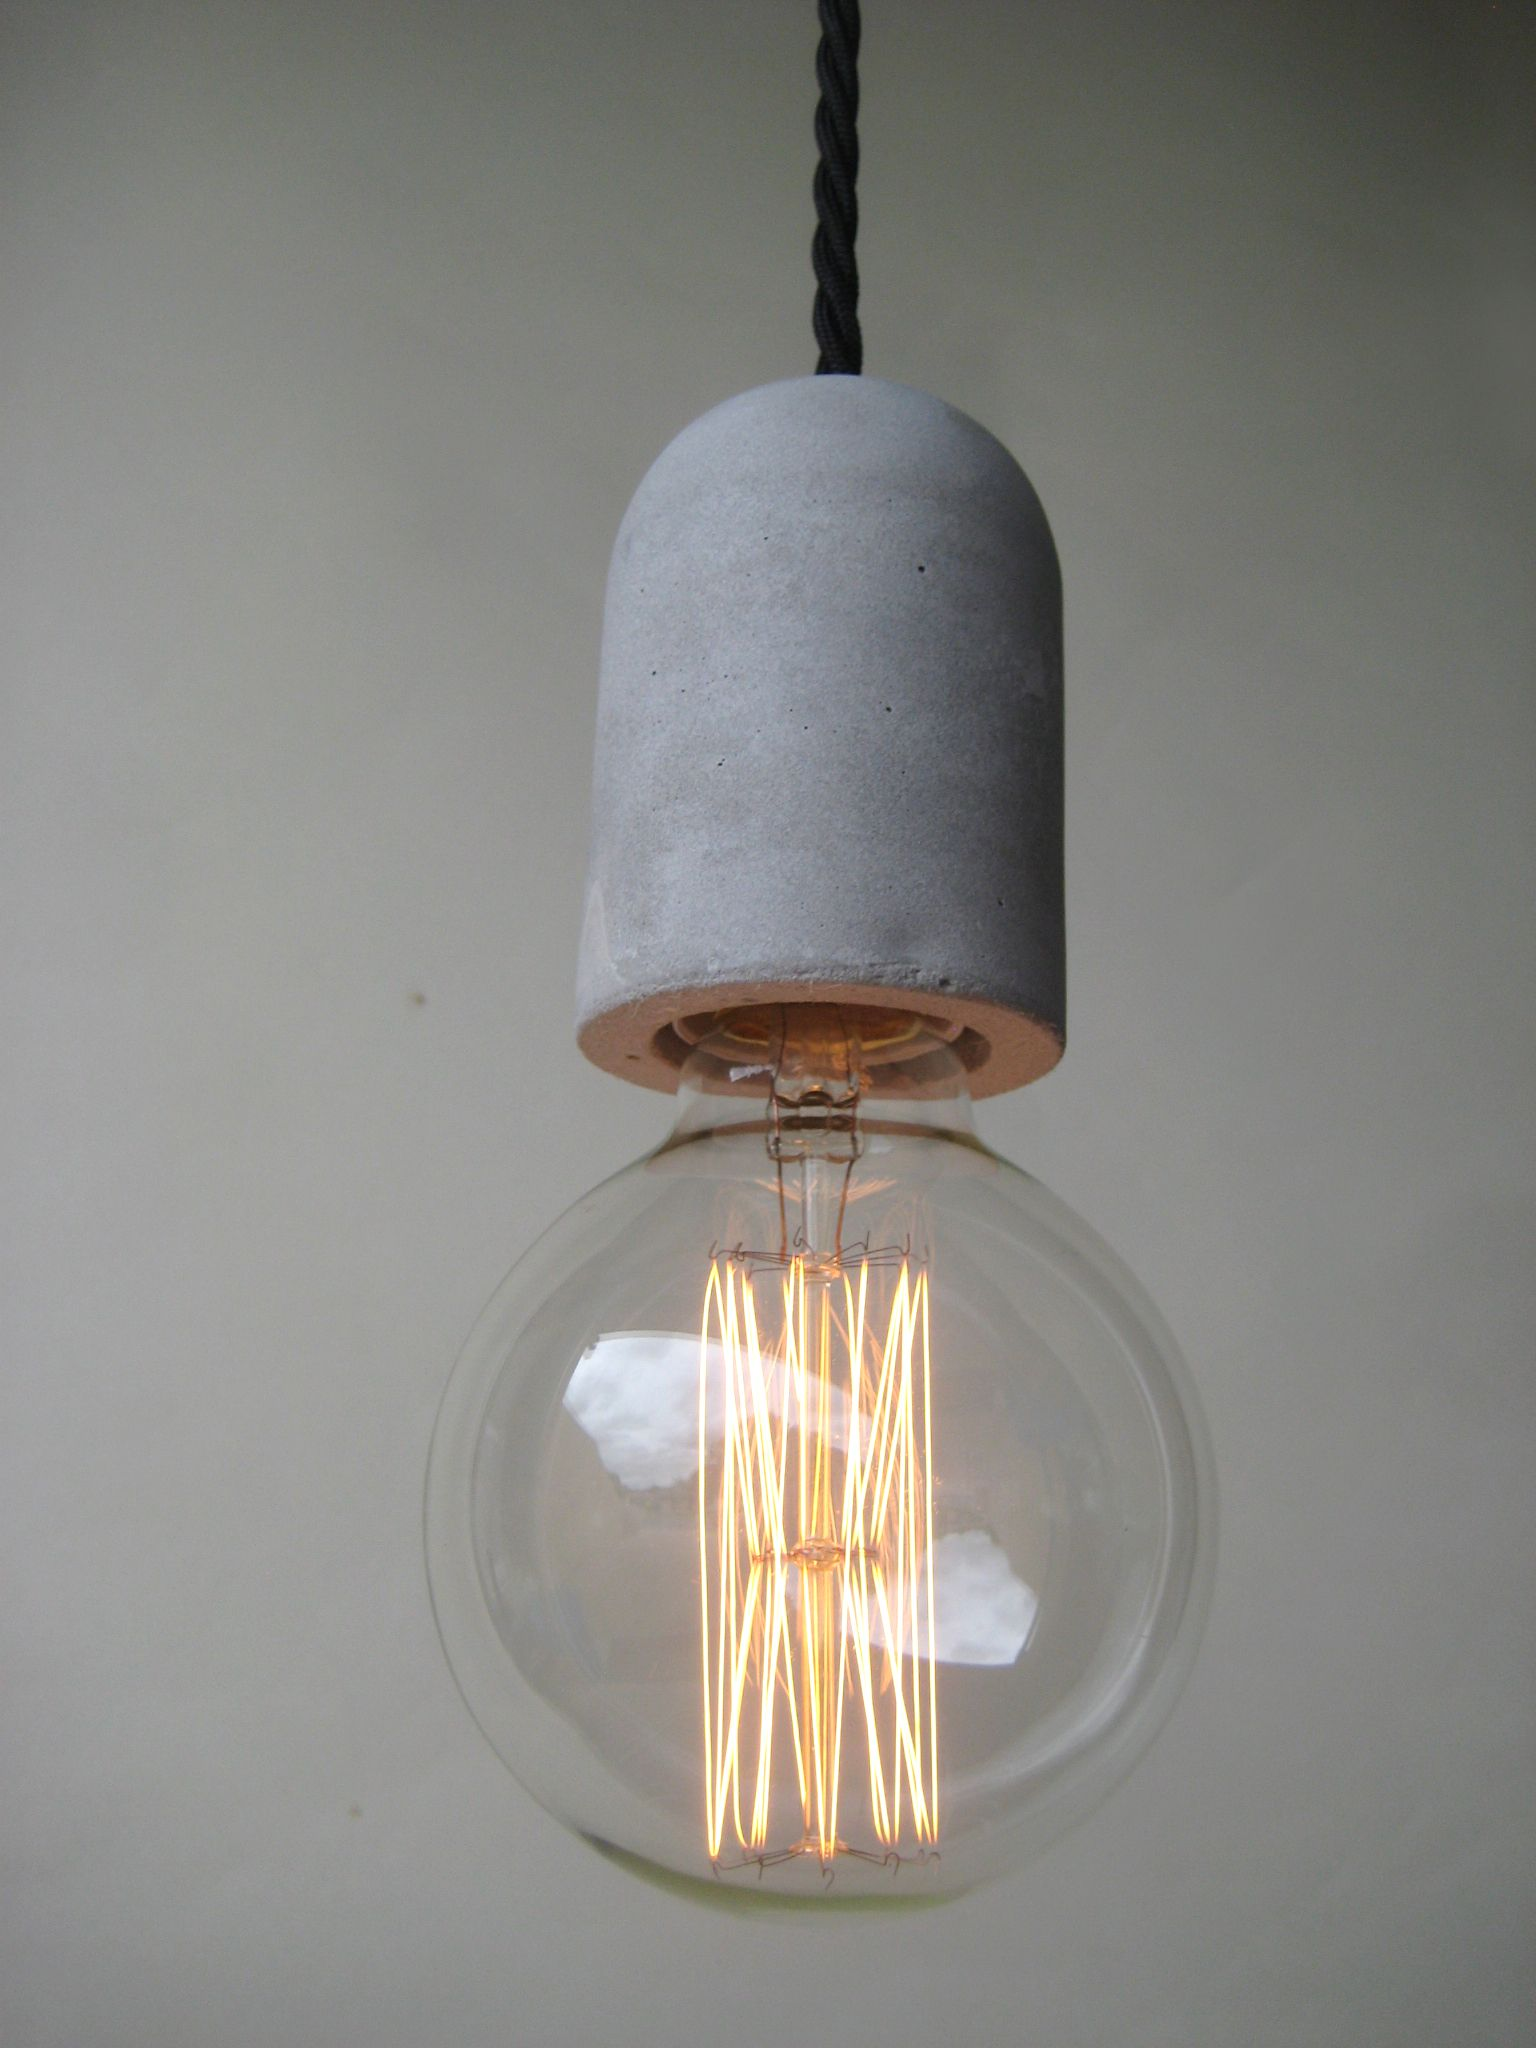 base craft copper lamps en ceiling lamp pendant s concrete